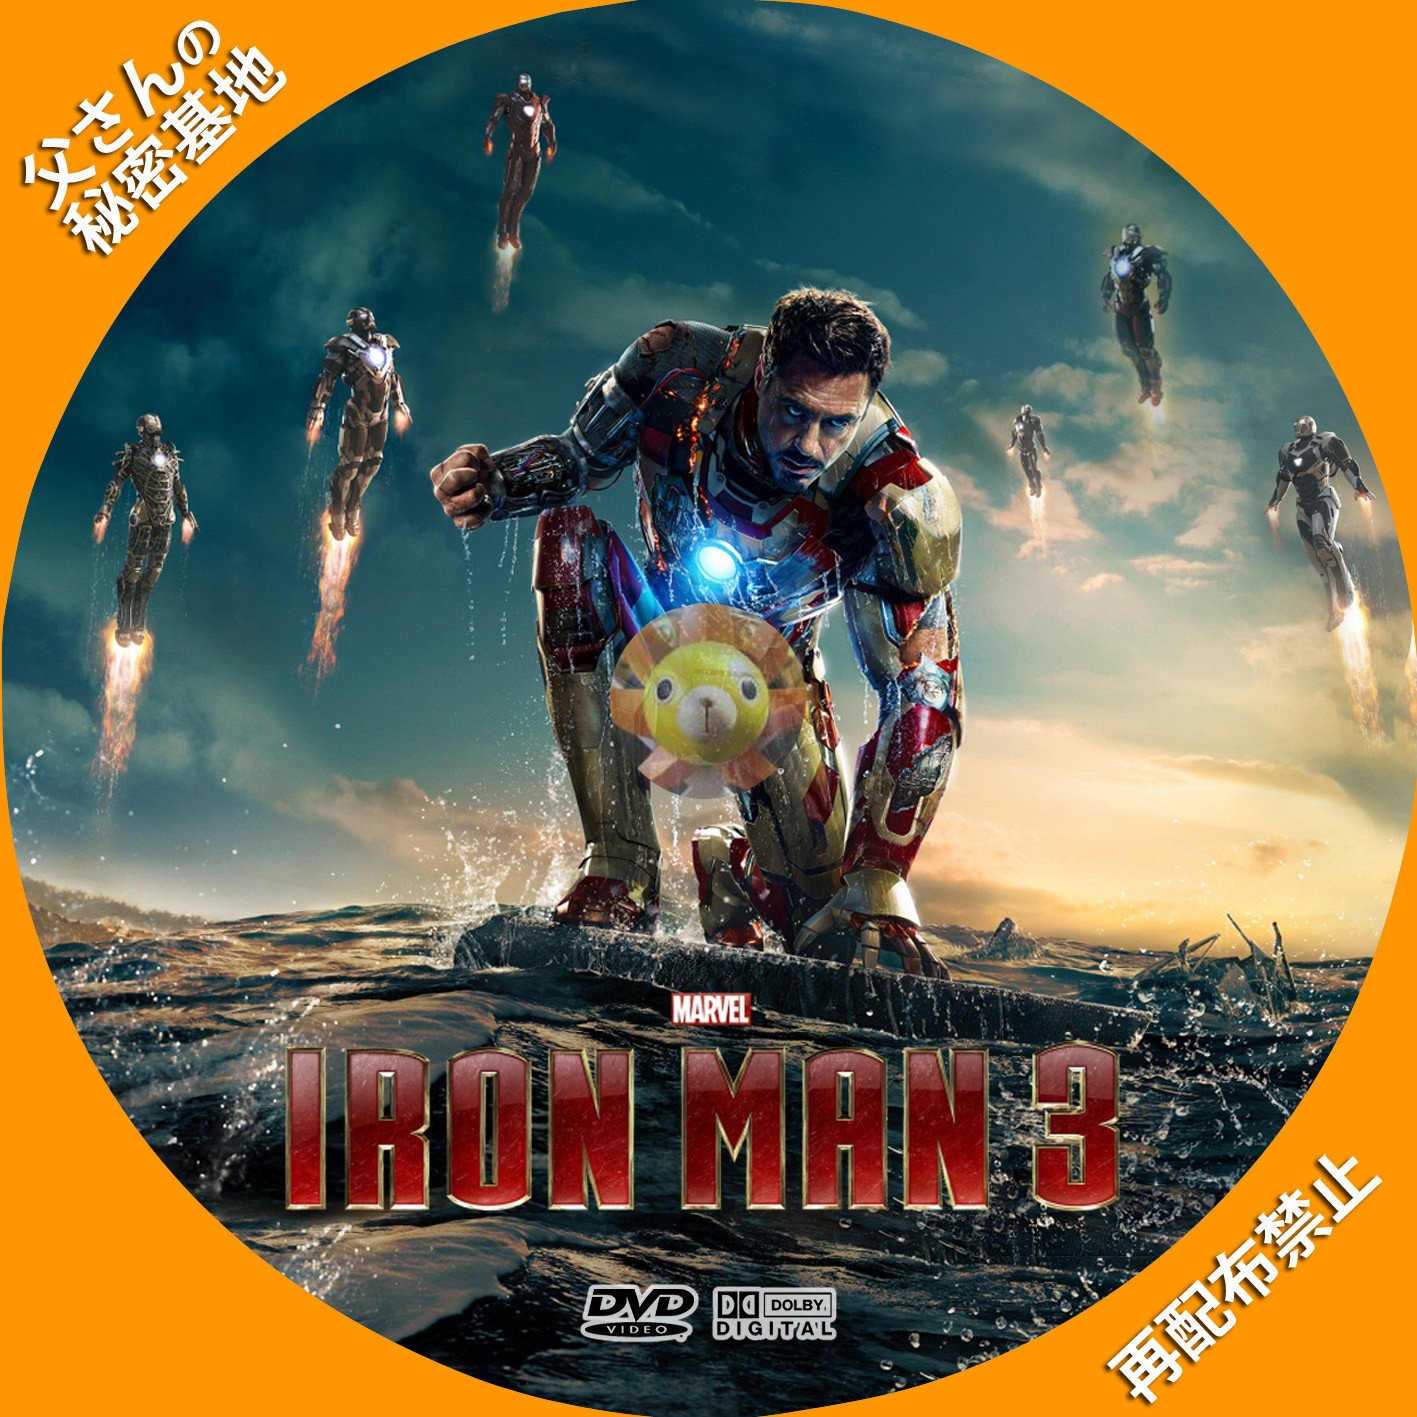 IRON MAN 3 B_DVD